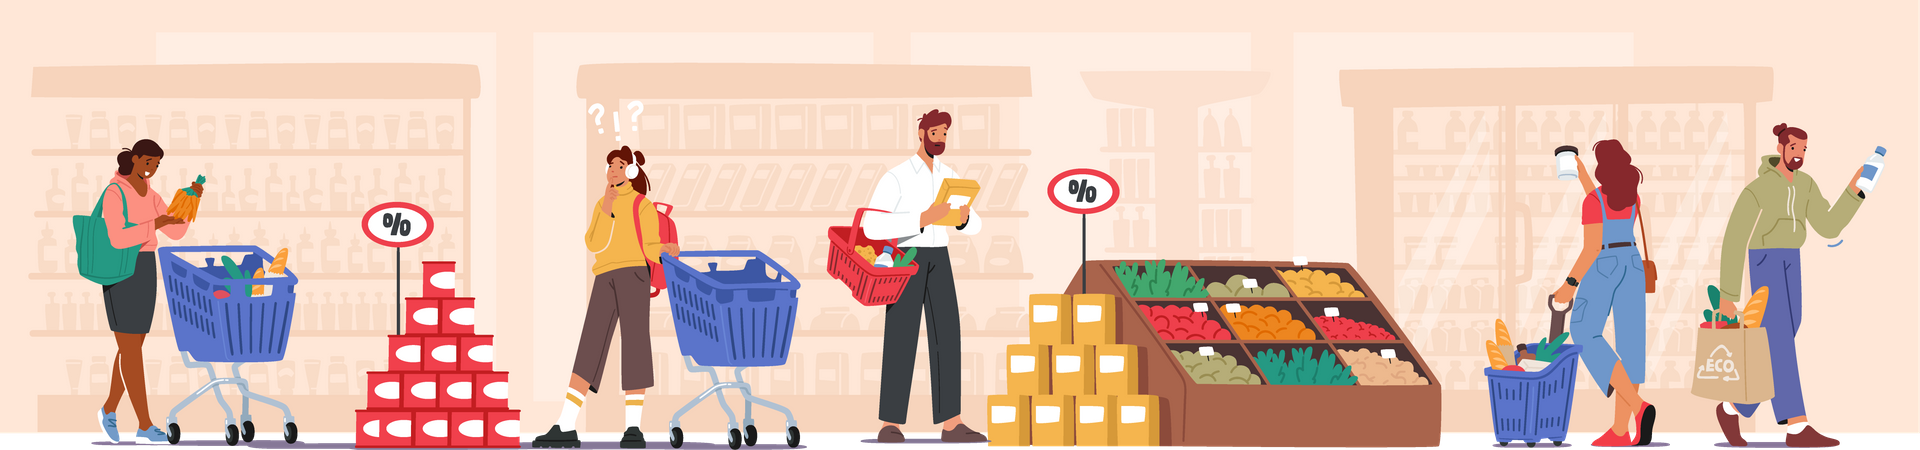 People shopping at shopping store Illustration